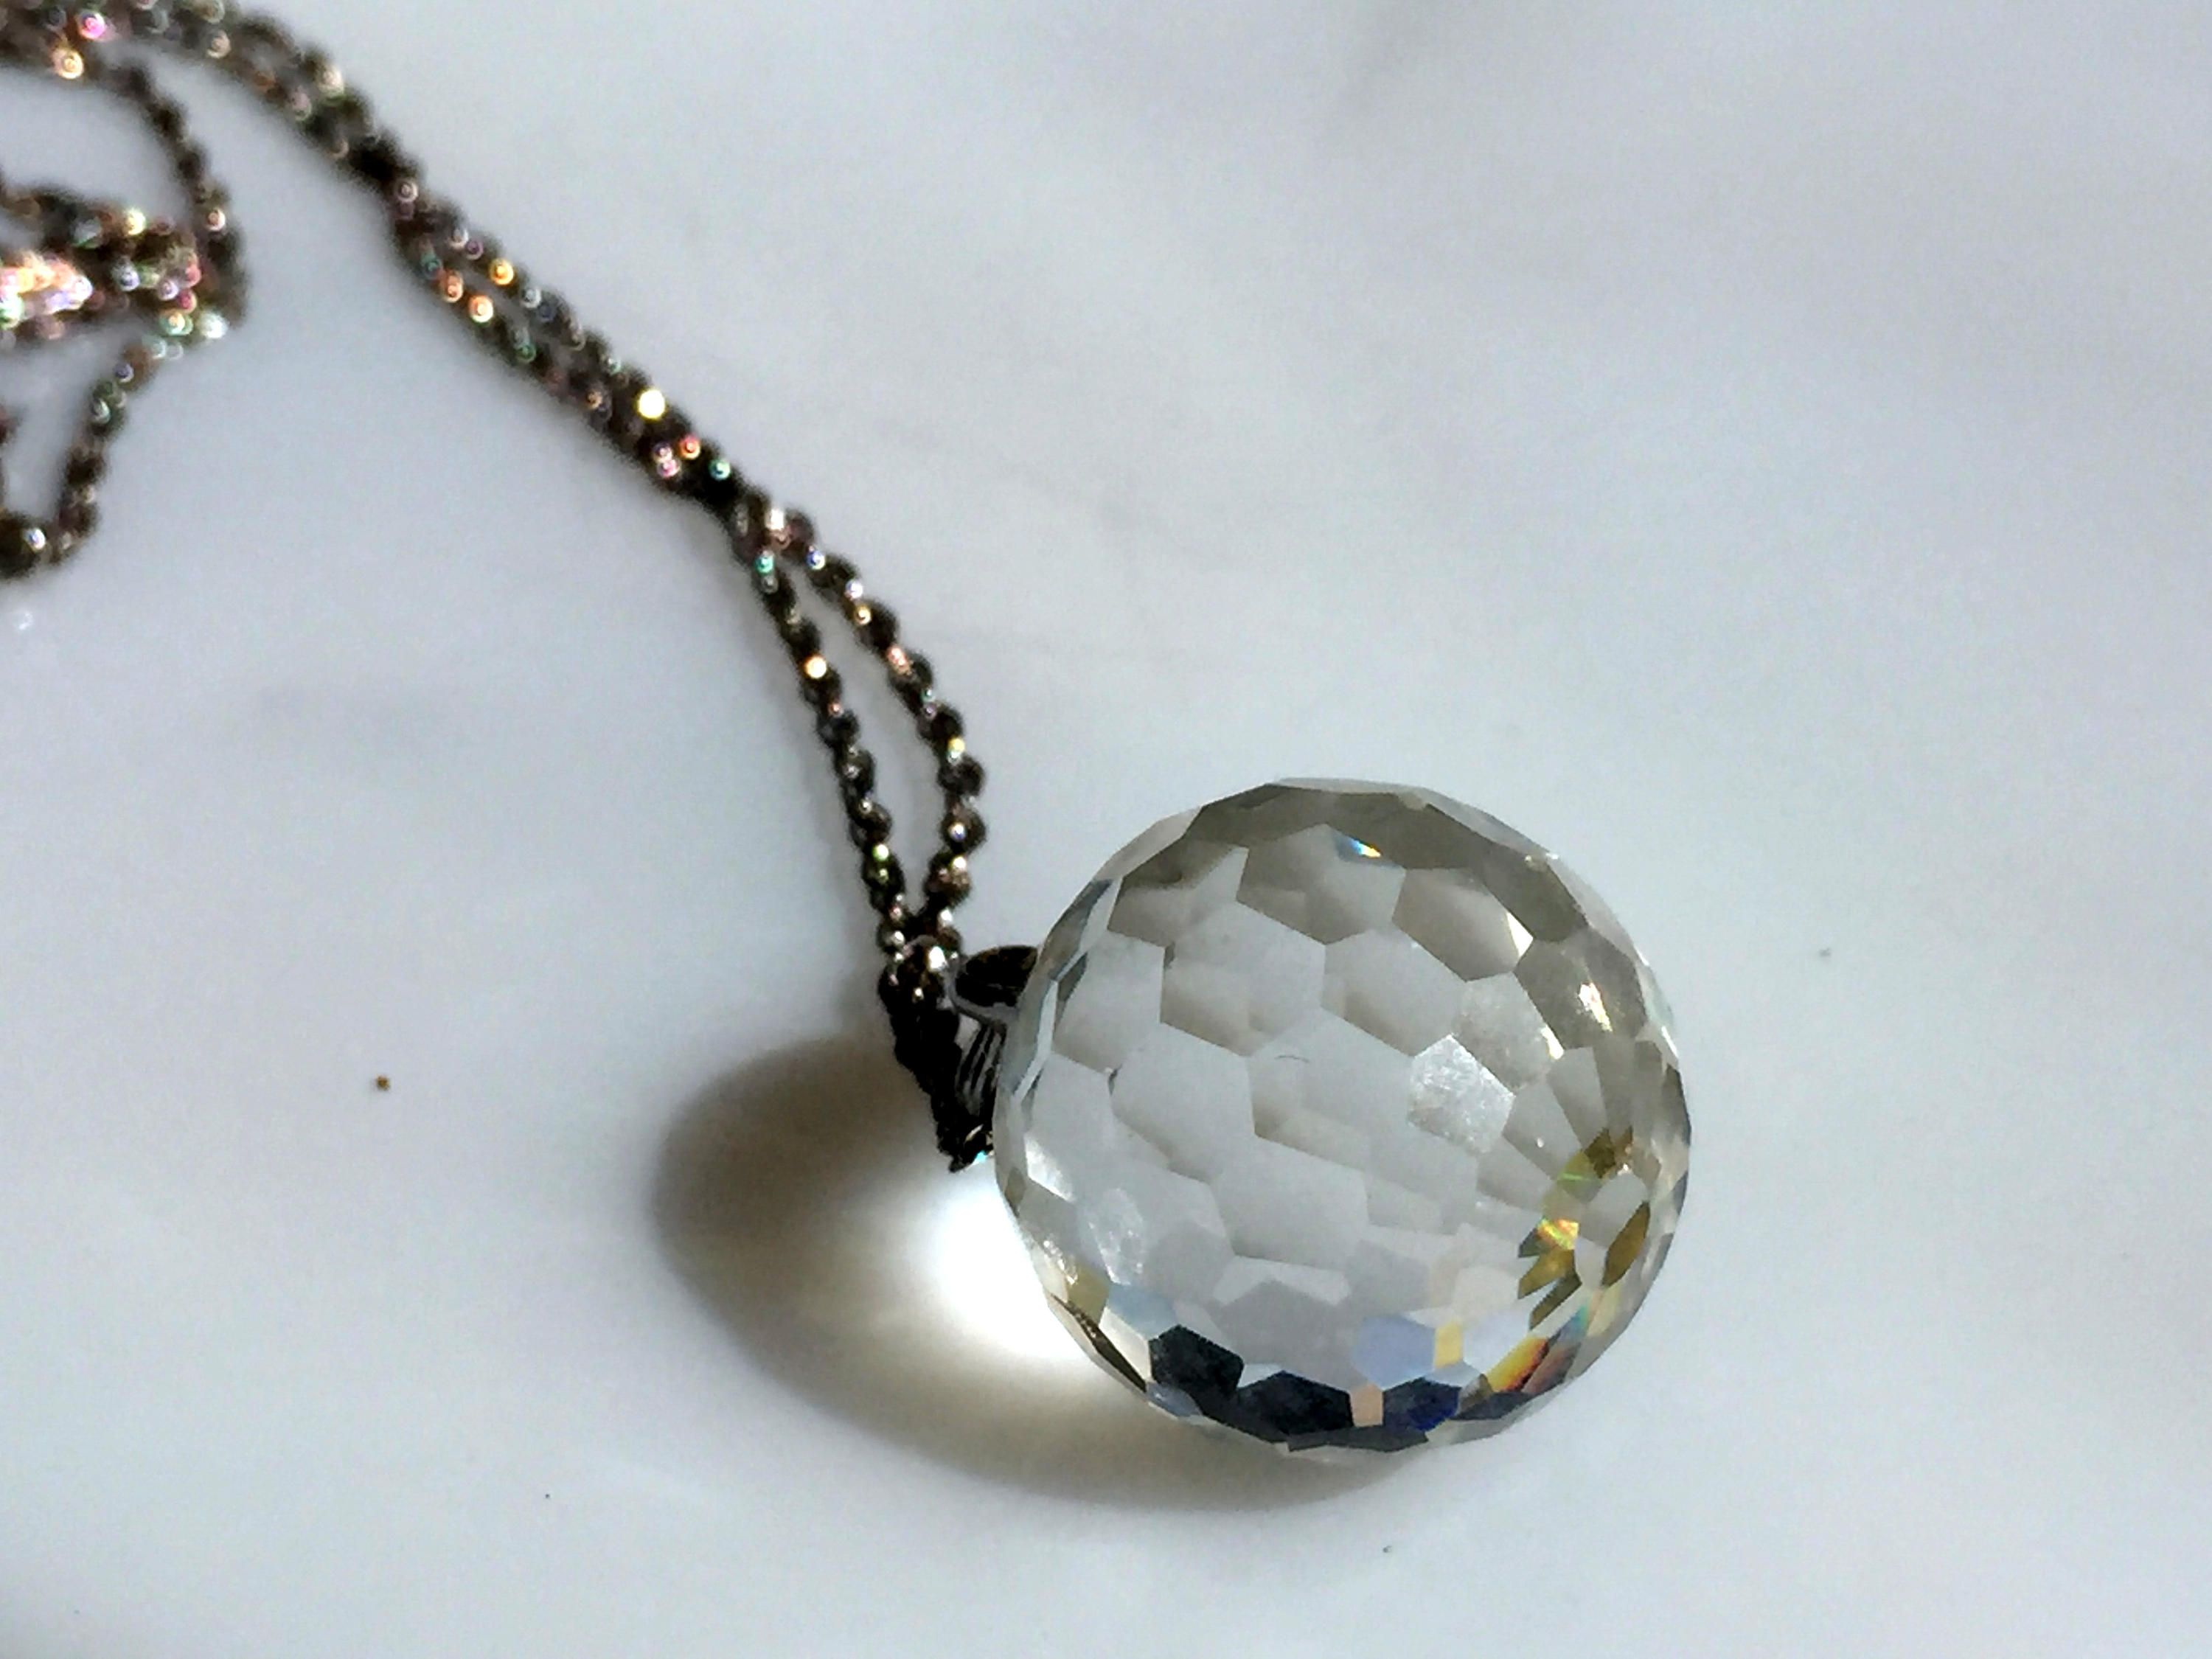 Vintage Gorham Sterling Slver Faceted Crystal Ball Round Glass Pendant Necklace Glass Pendant Necklace Pendant Necklace Pendant